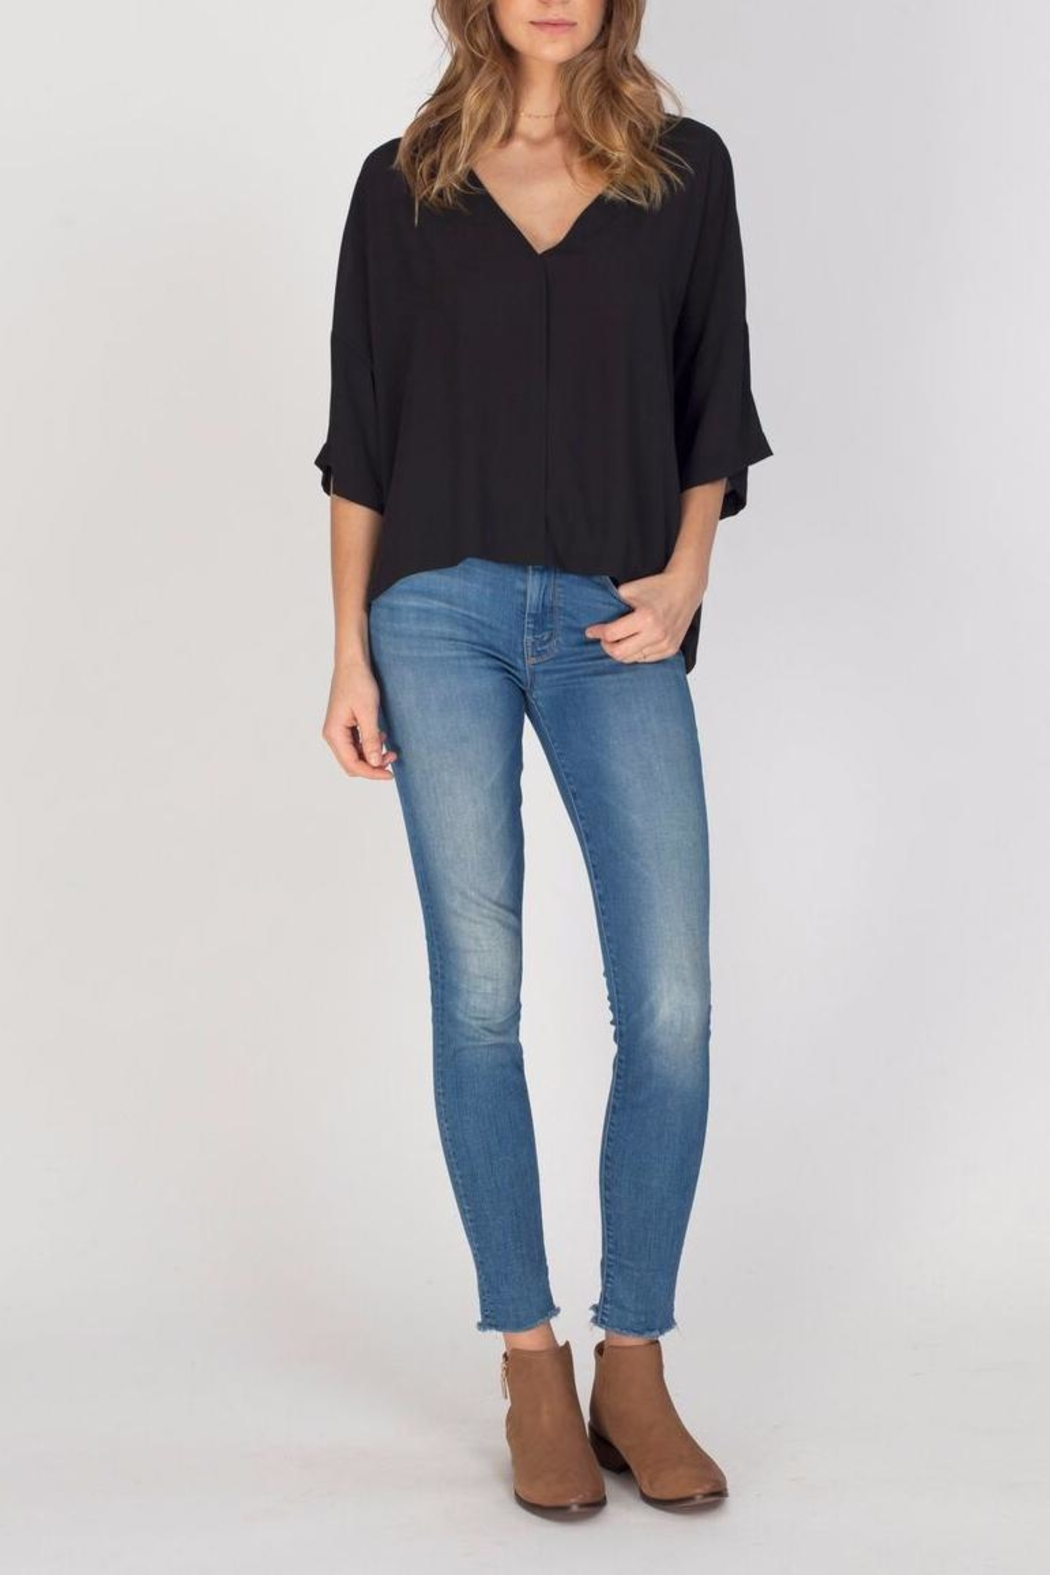 Gentle Fawn Black Andrea Top - Main Image